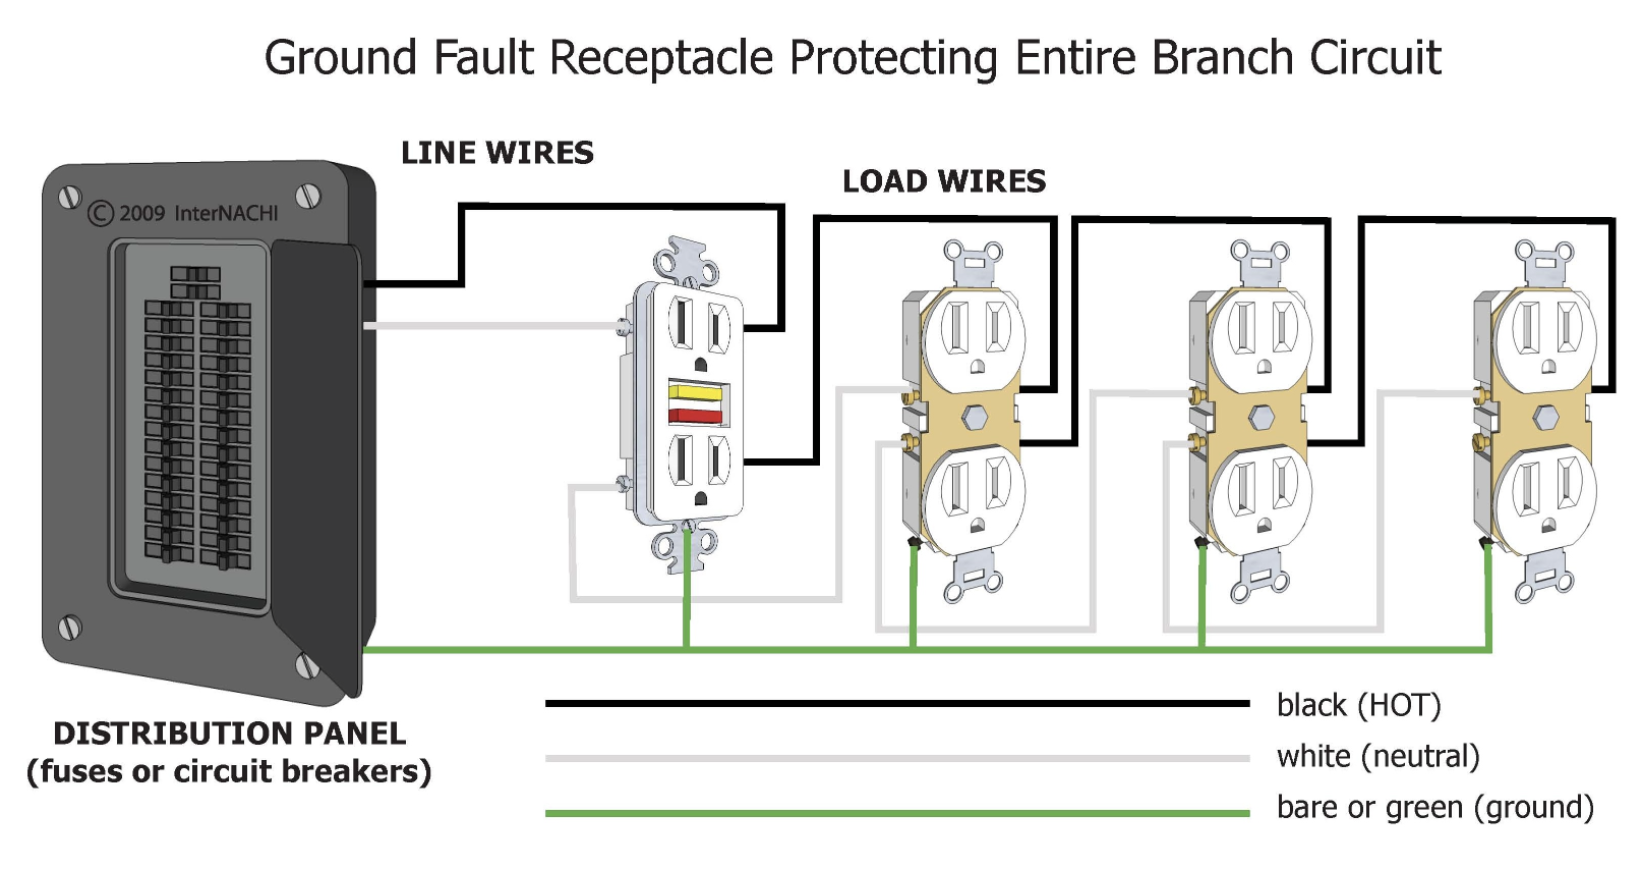 Inspecting Gfci And Afci Protection Internachi Electrical Circuit Diagram Outlet Wiring Circuit Breaker Panel